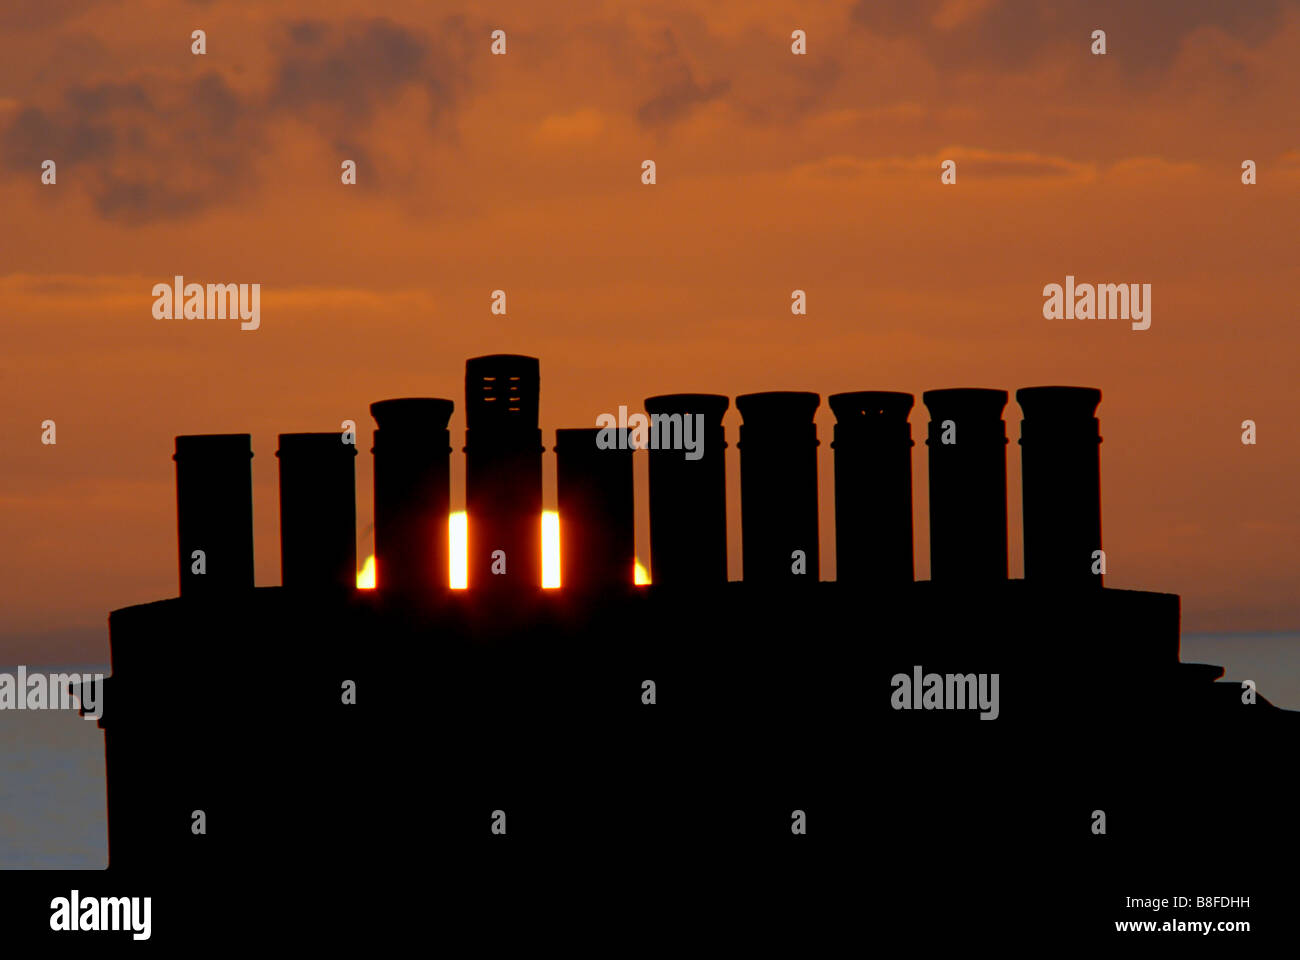 chimney stack with multiple chimney pots. sunset beyond - Stock Image